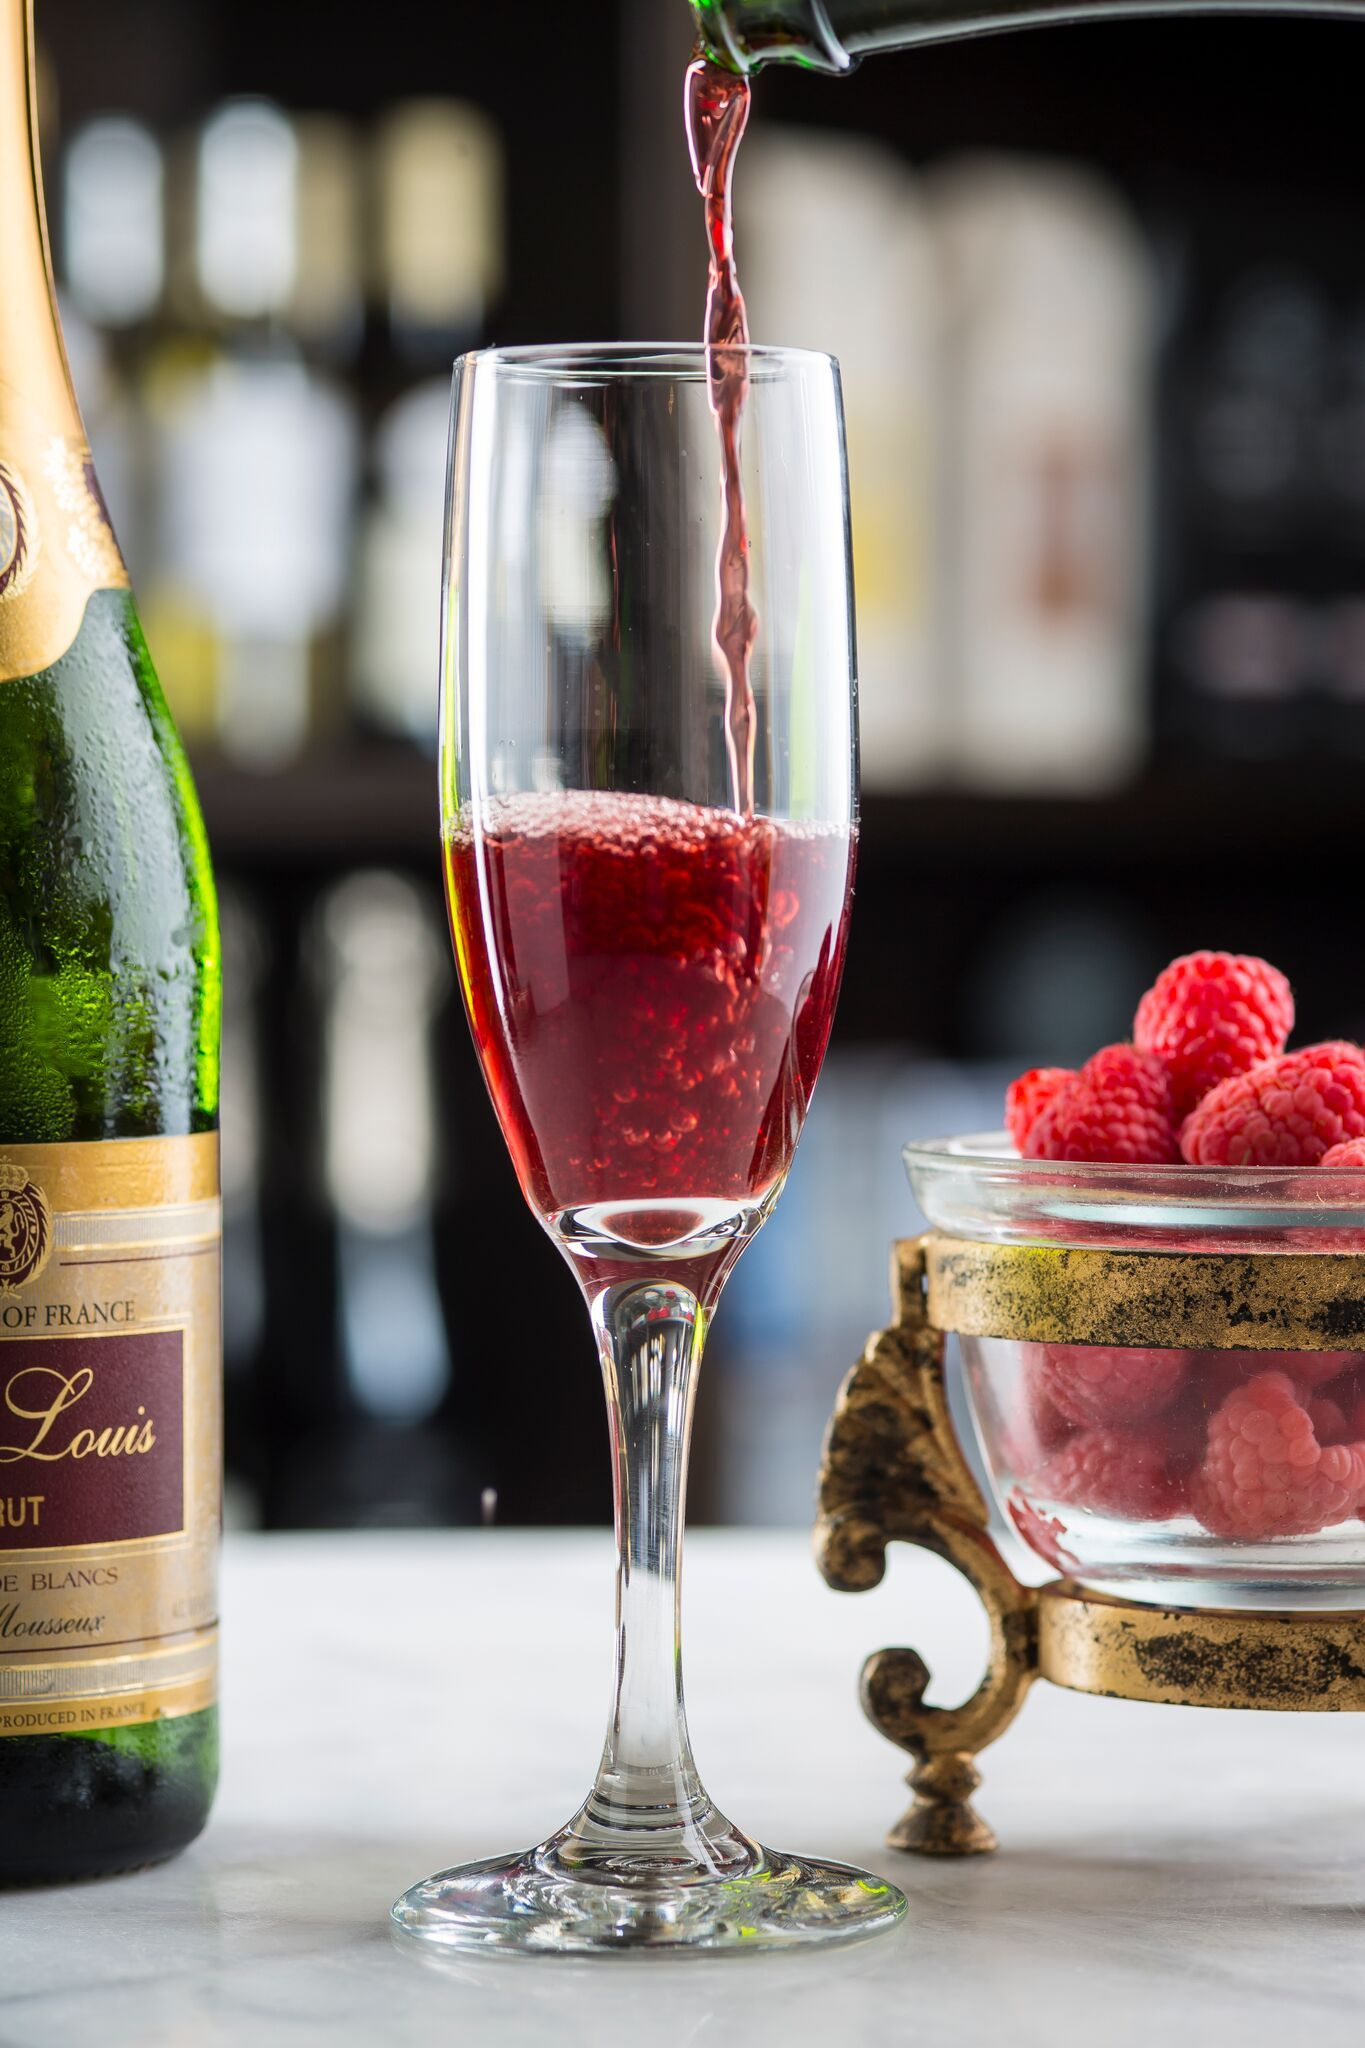 Pin By Toni Patisserie Cafe On Les Boissons Drinks Alcoholic Drinks Alcohol Red Wine